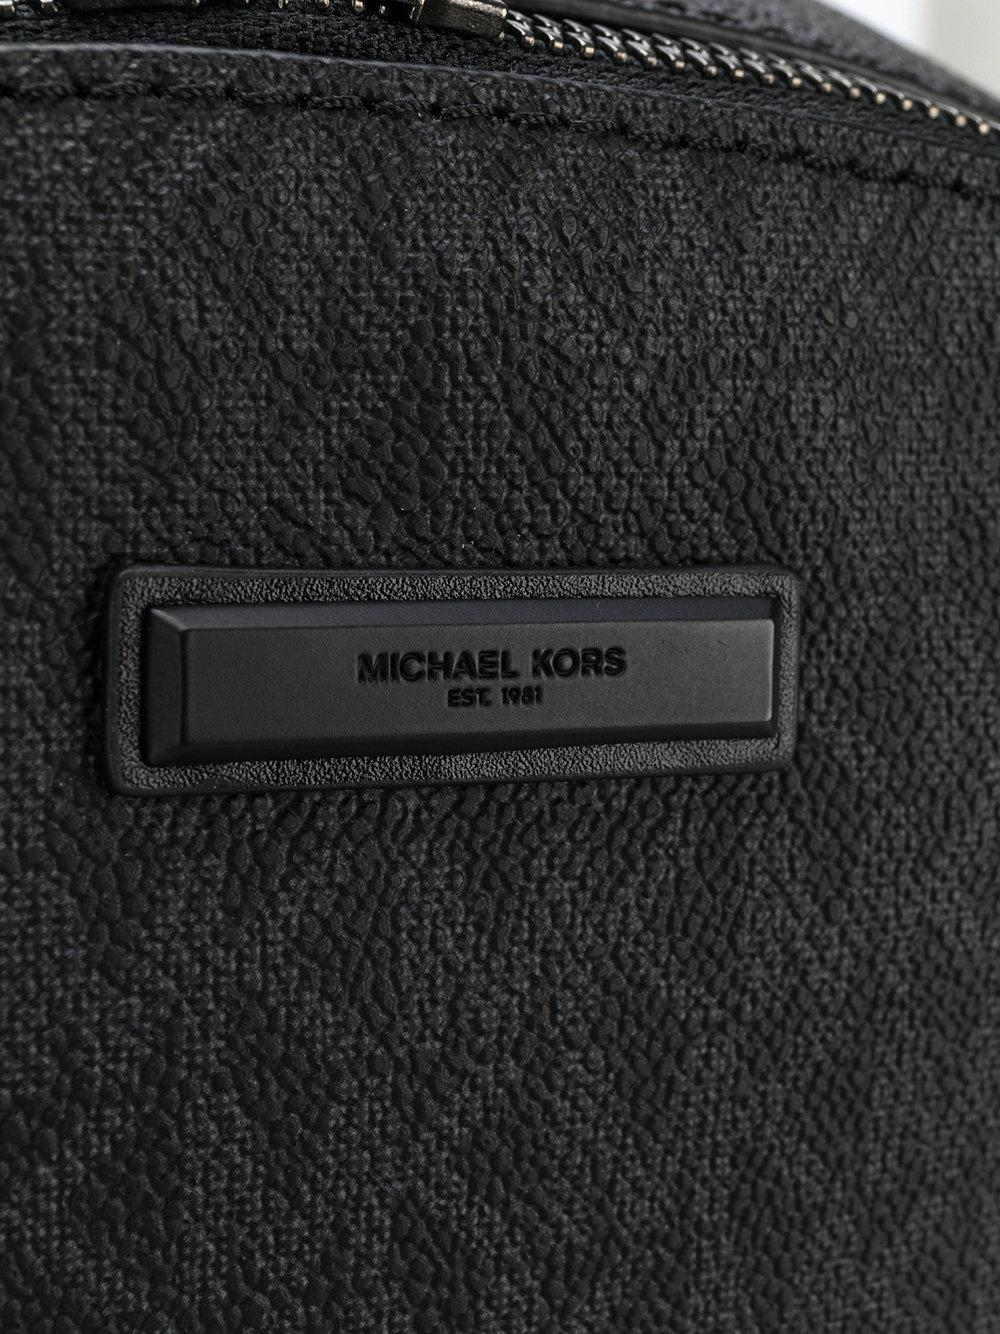 ca255415e009 Michael Kors - Black Streamlined Mk Logo Backpack for Men - Lyst. View  fullscreen